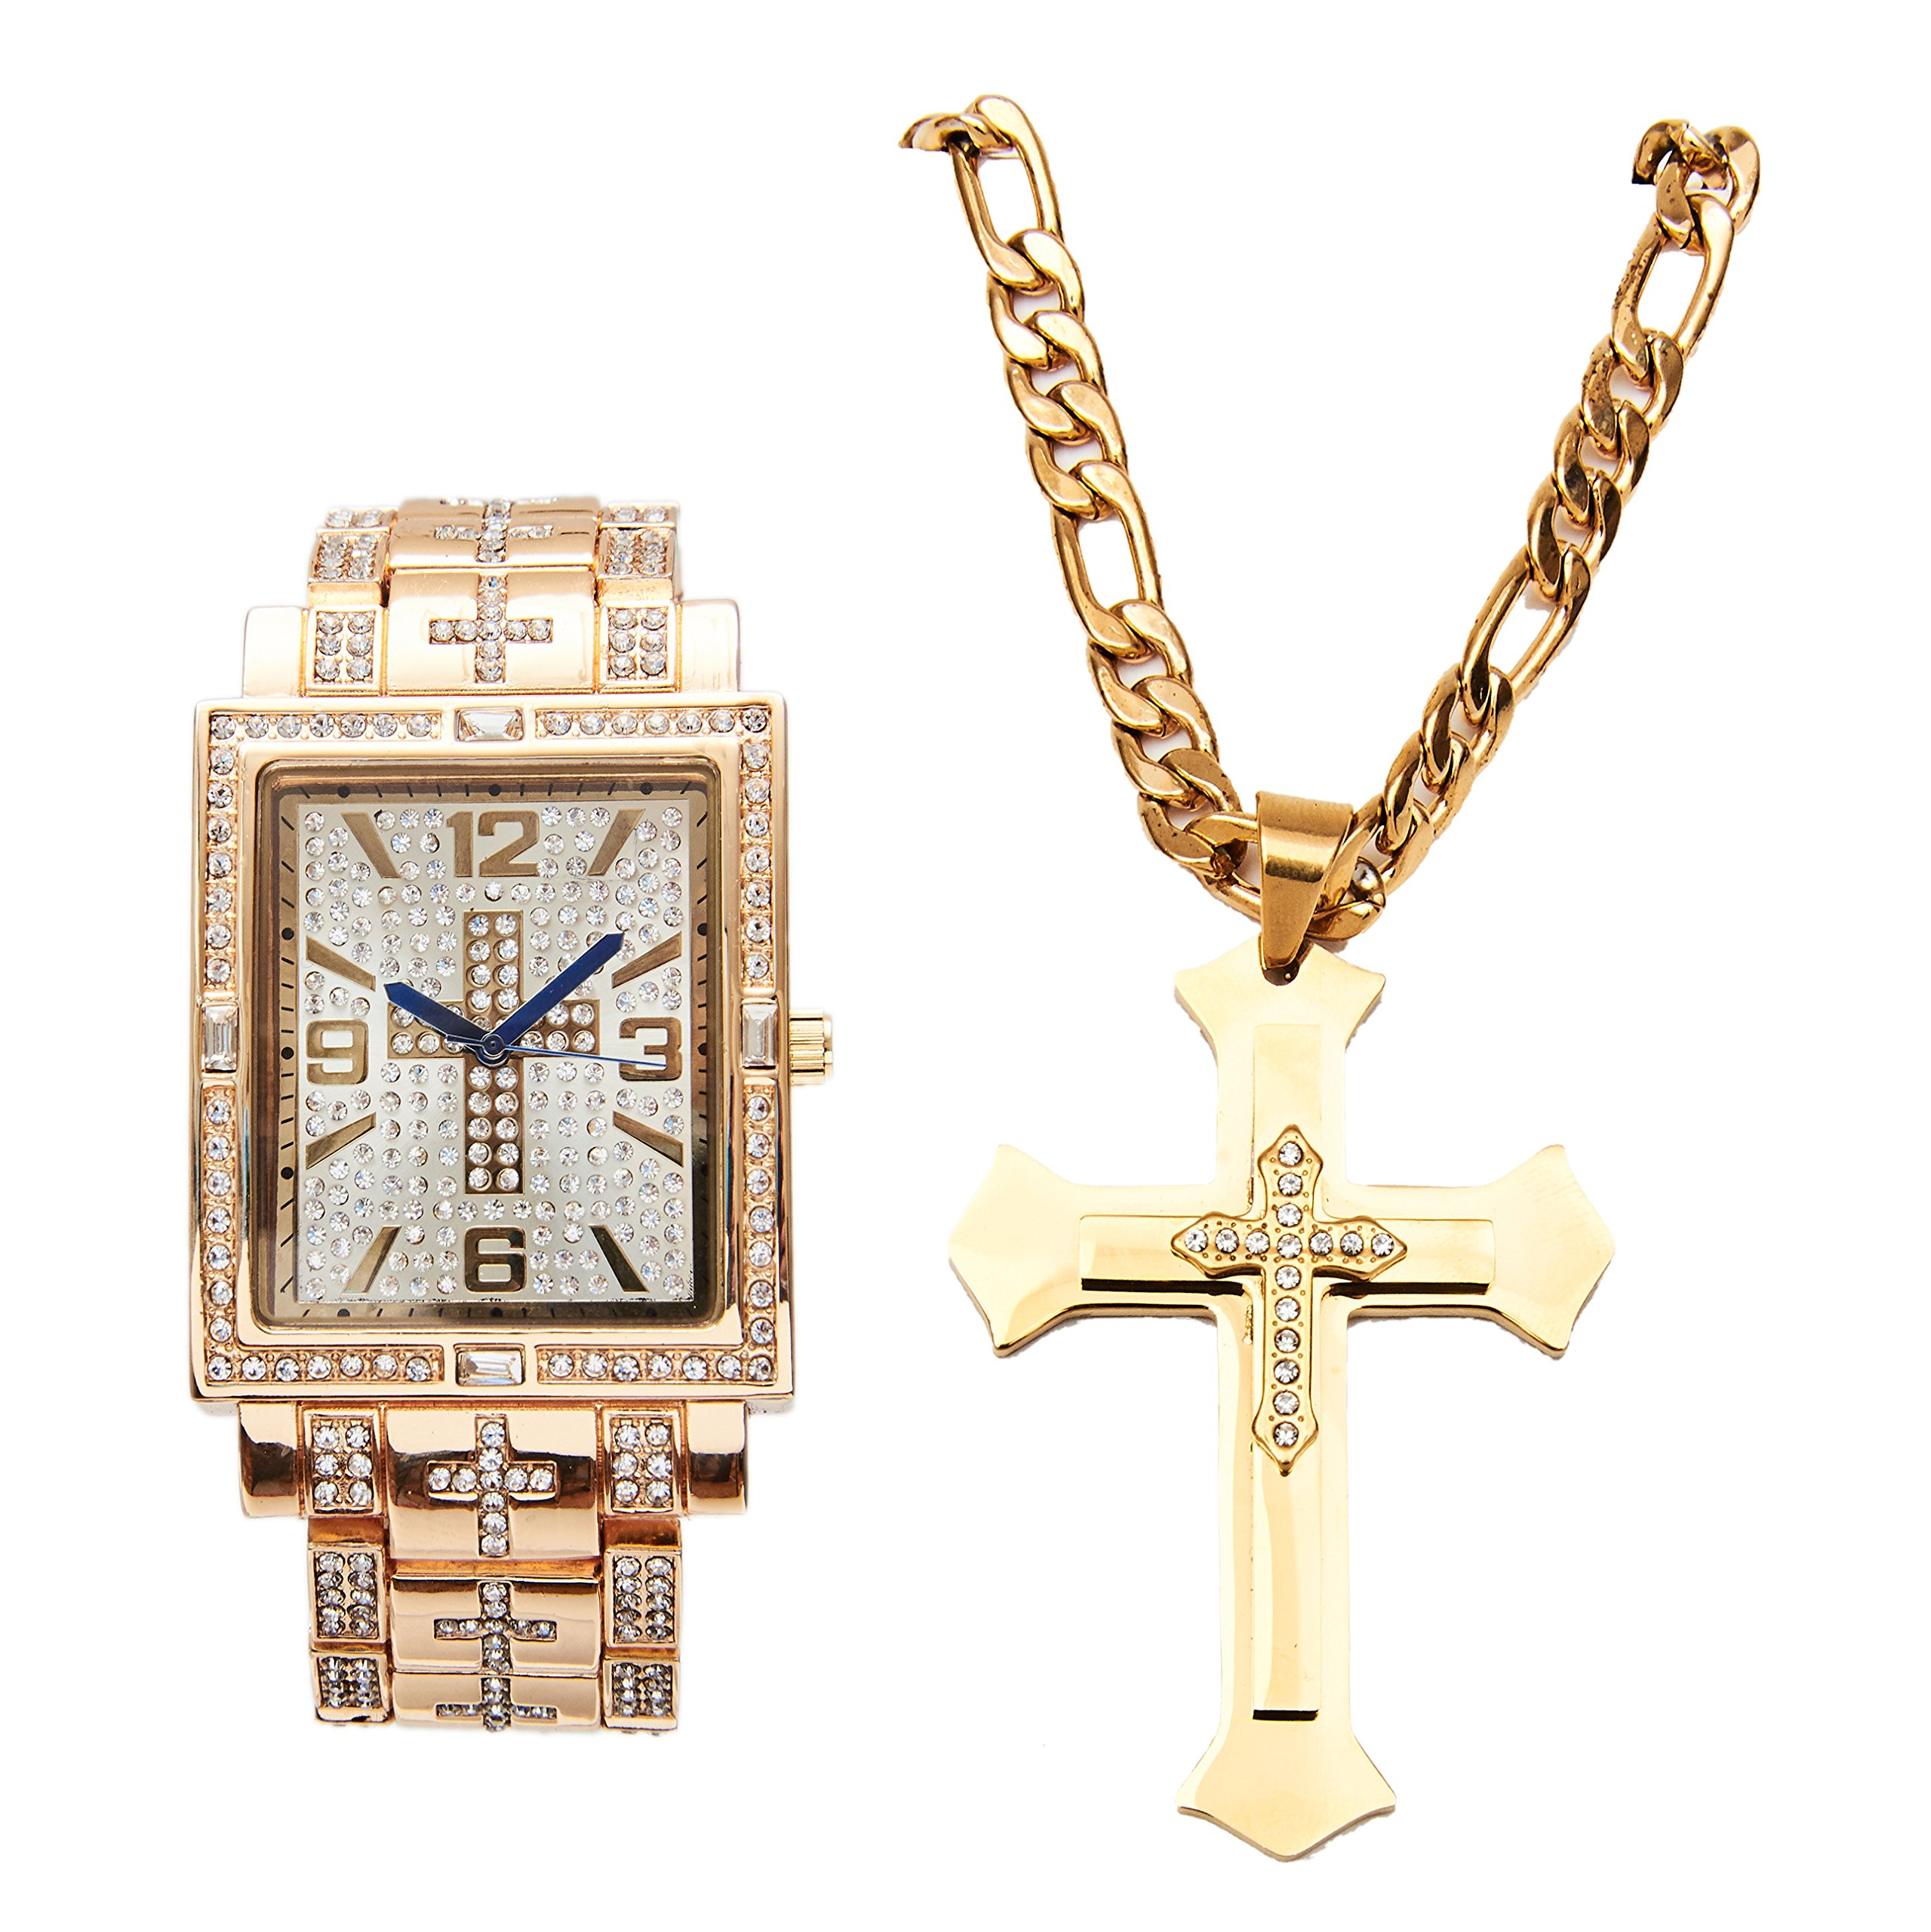 Bling-ed Out Hip Hop Jesus Piece - Rectangular Gold Watch with Baguettes on Trim and Matching 3 Layered Iced Stainless Steel Cross Necklace L0487GLD-LR1024C Cross Gold Set